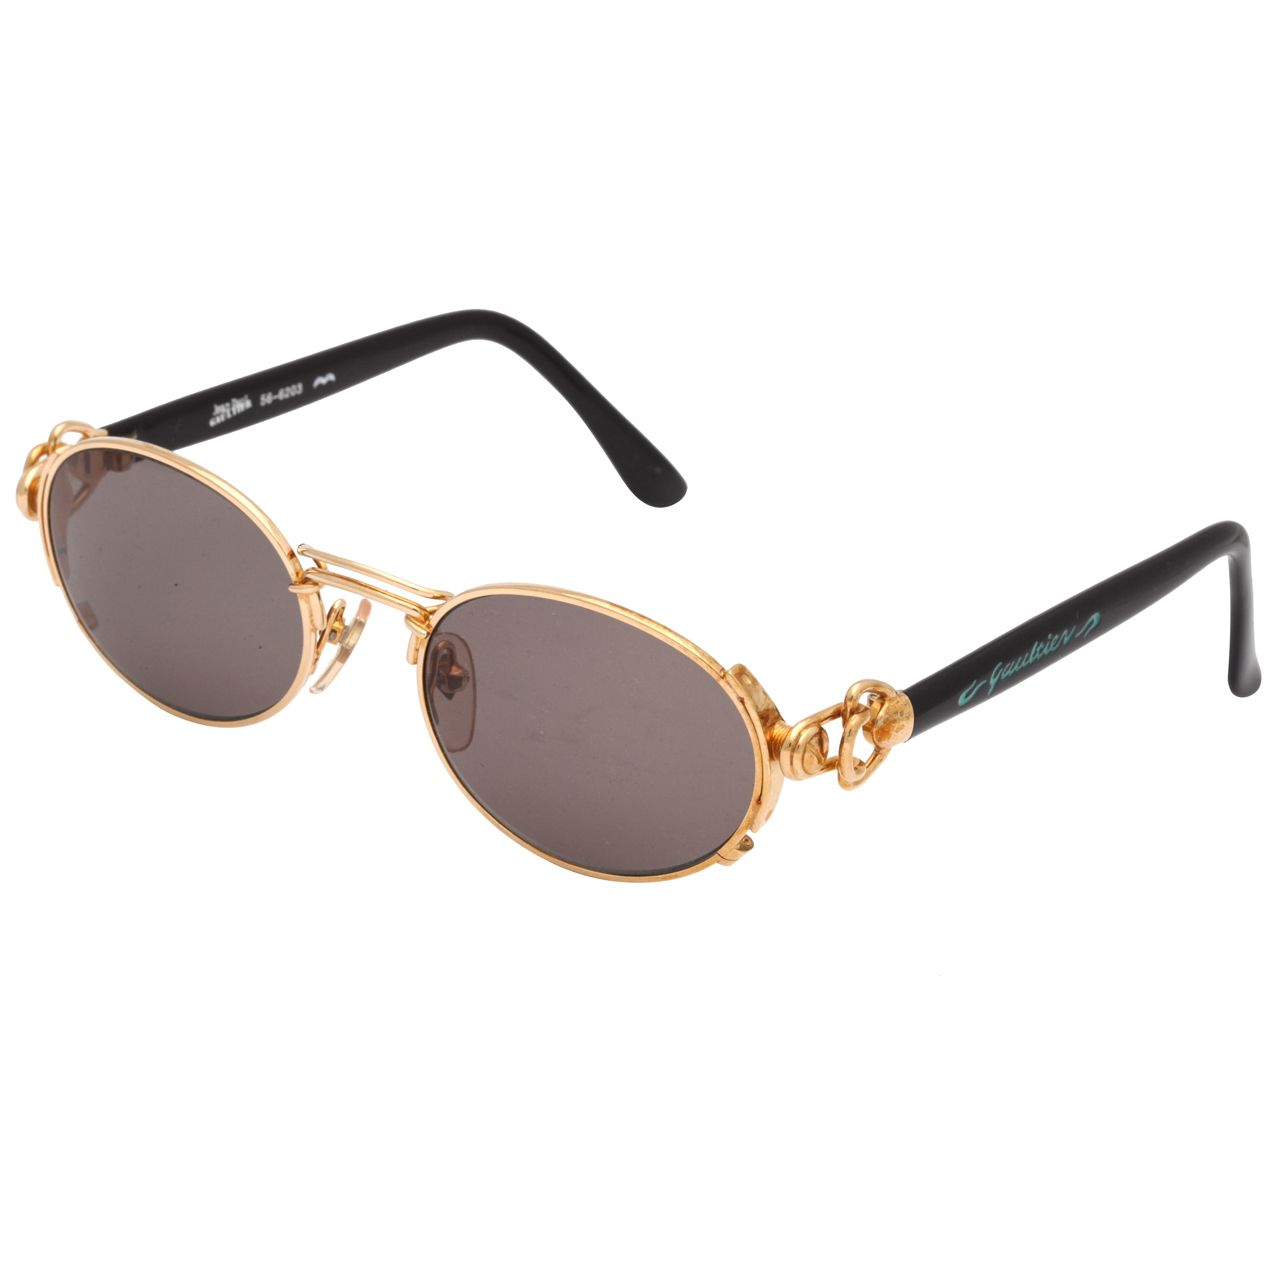 Sunglasses Jean Gaultier 56 2019Fashions Gold Paul In 6203 PkZTXiuwO